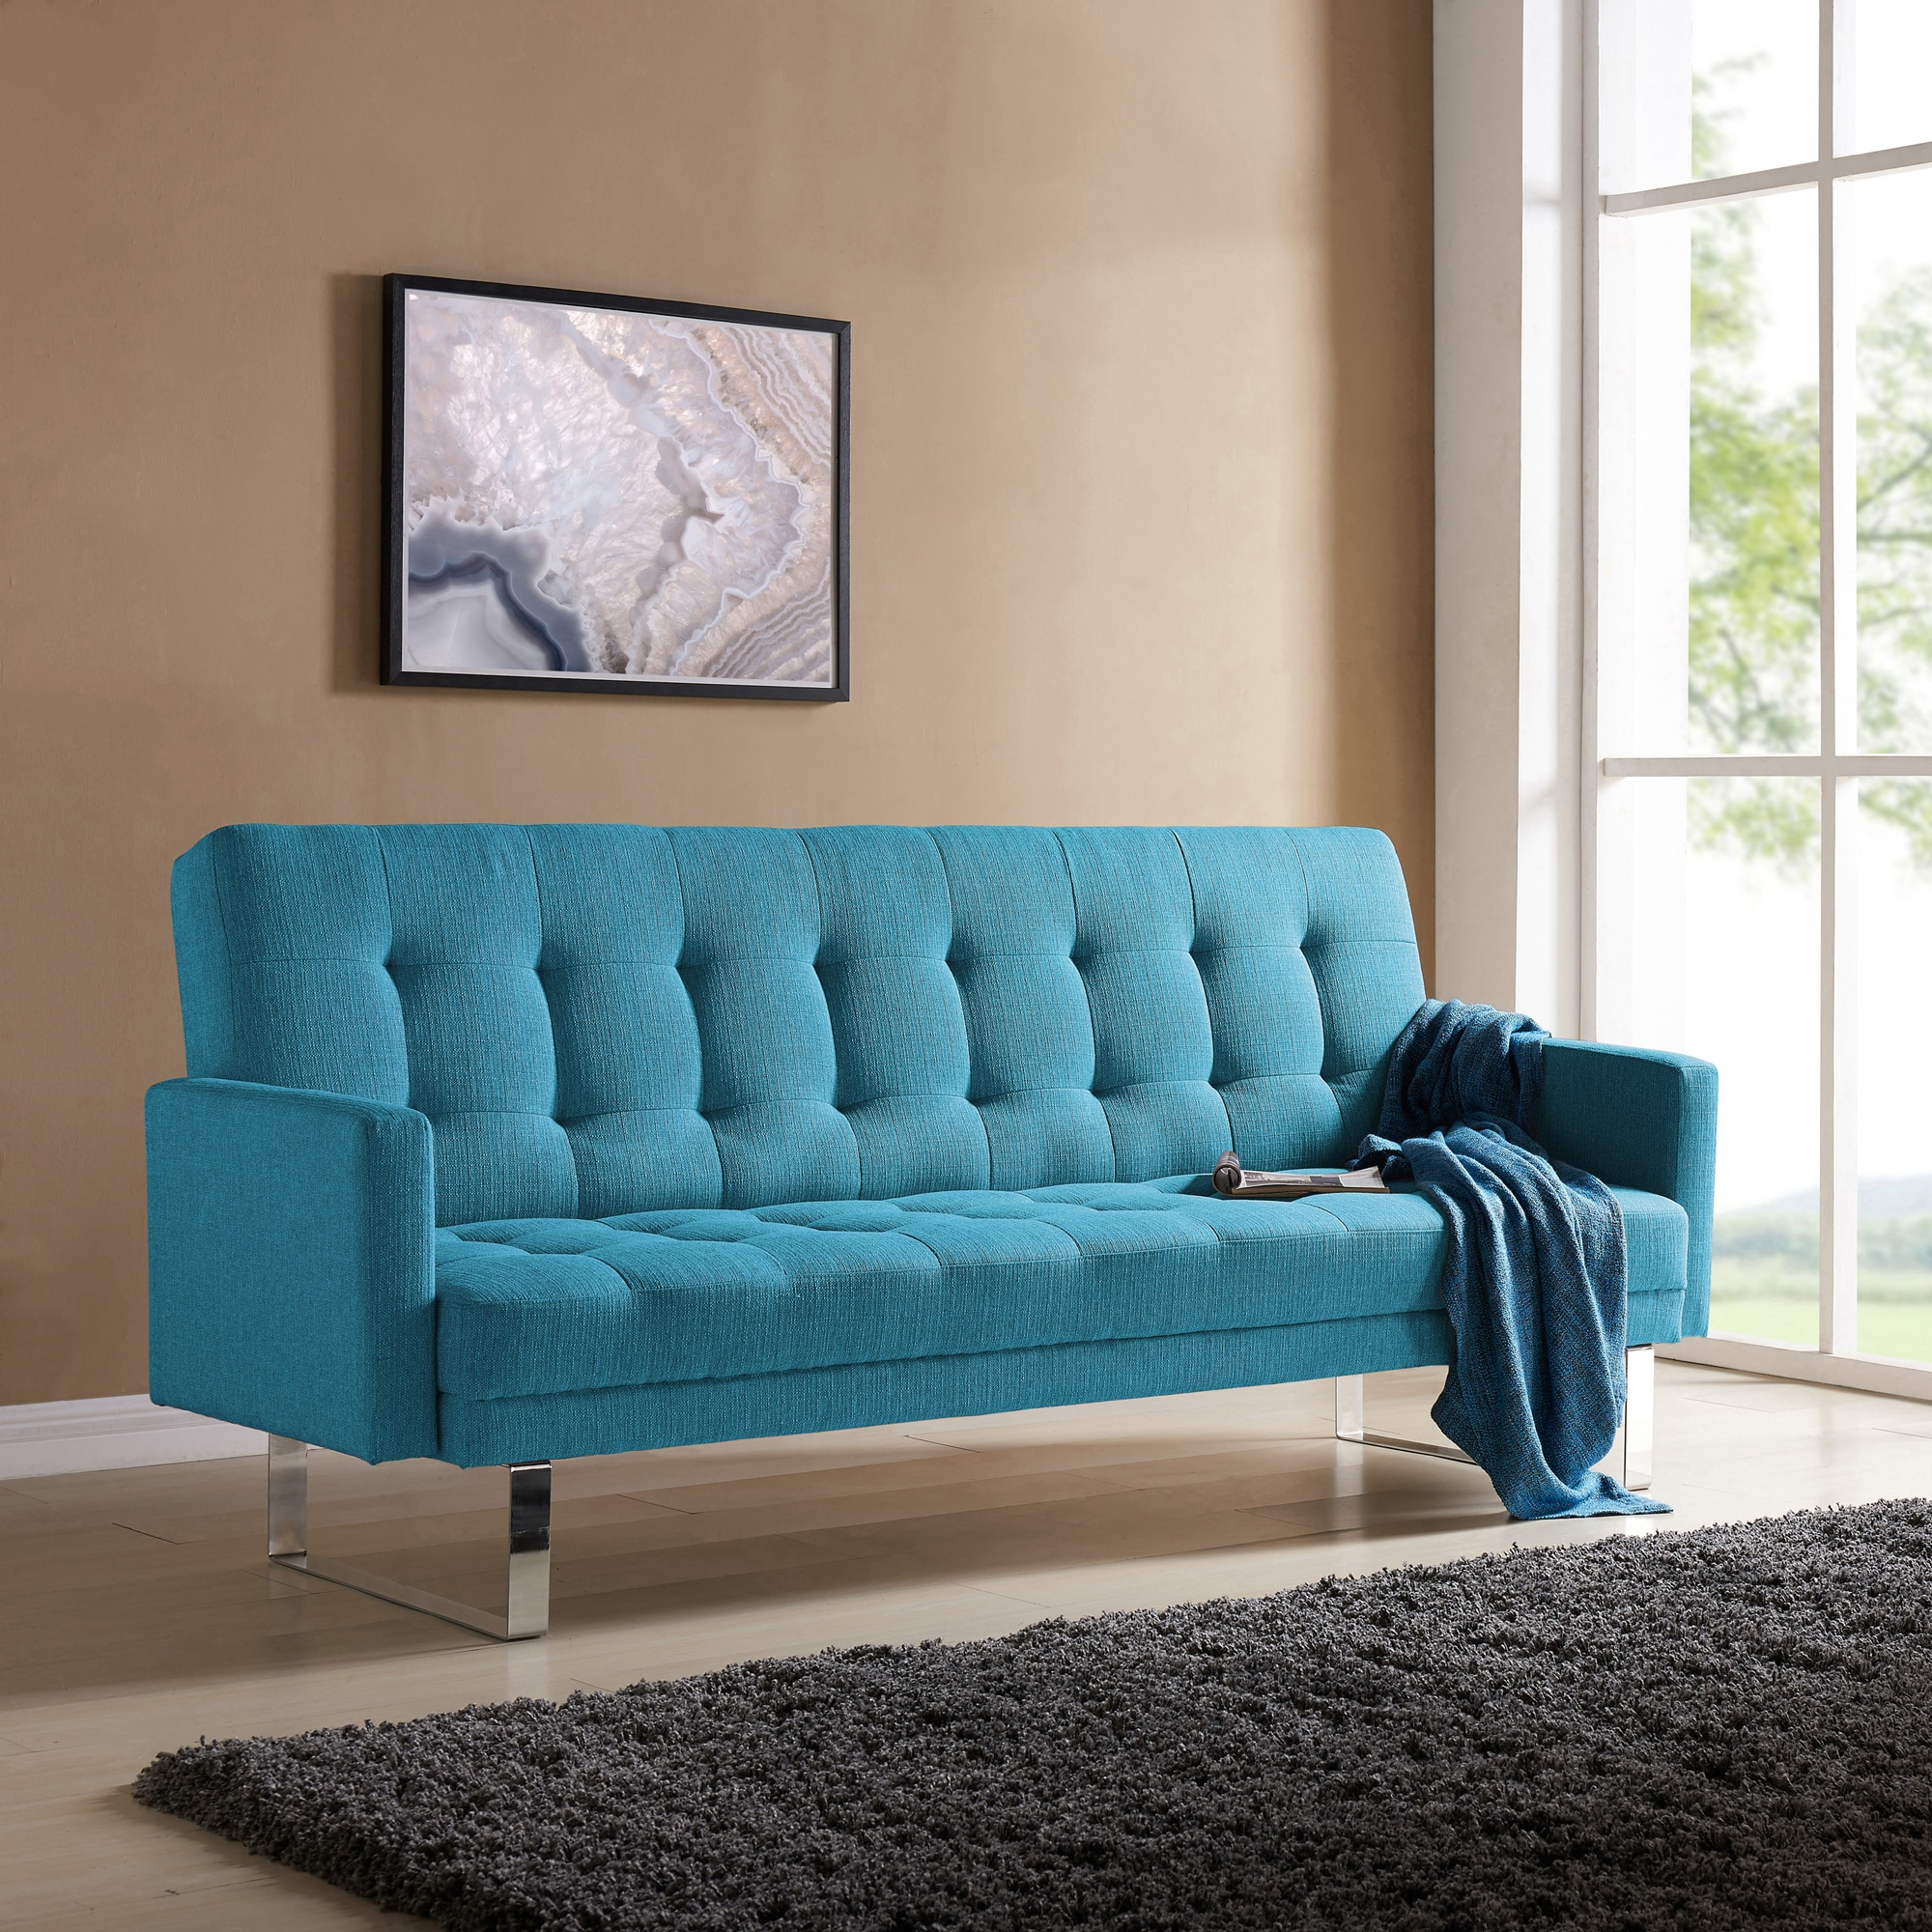 Handy Living Springfield Turquoise Blue Linen Click Clack Futon Sofa Bed On Free Shipping Today Com 17520741